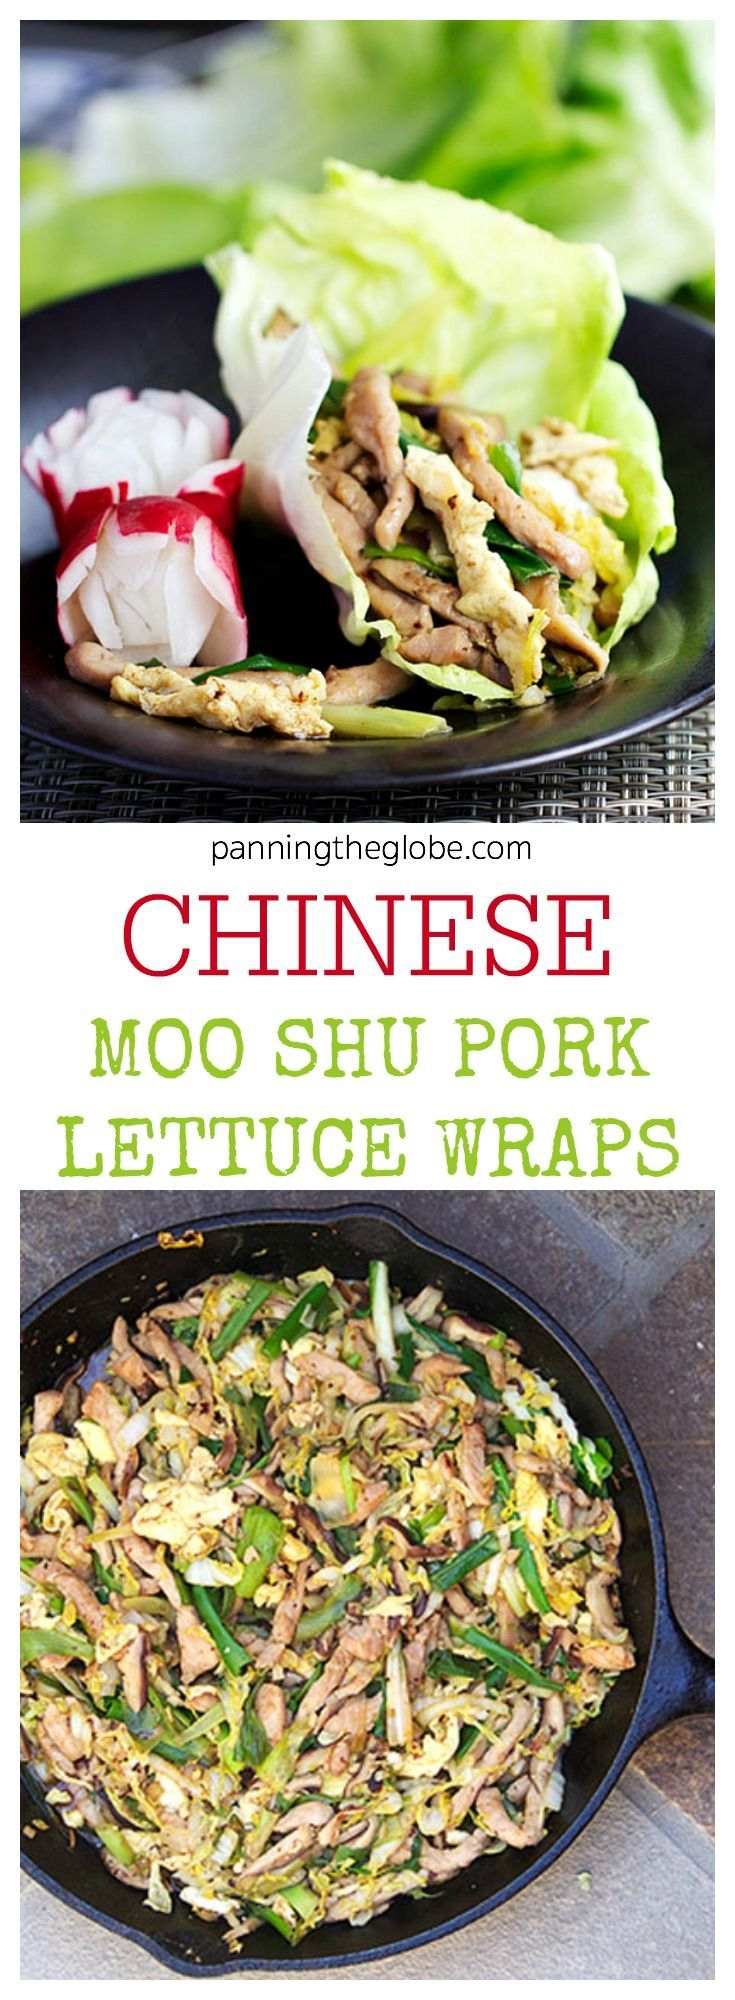 Homemade Moo Shu Pork lettuce wraps. Better and healthier than takeout.